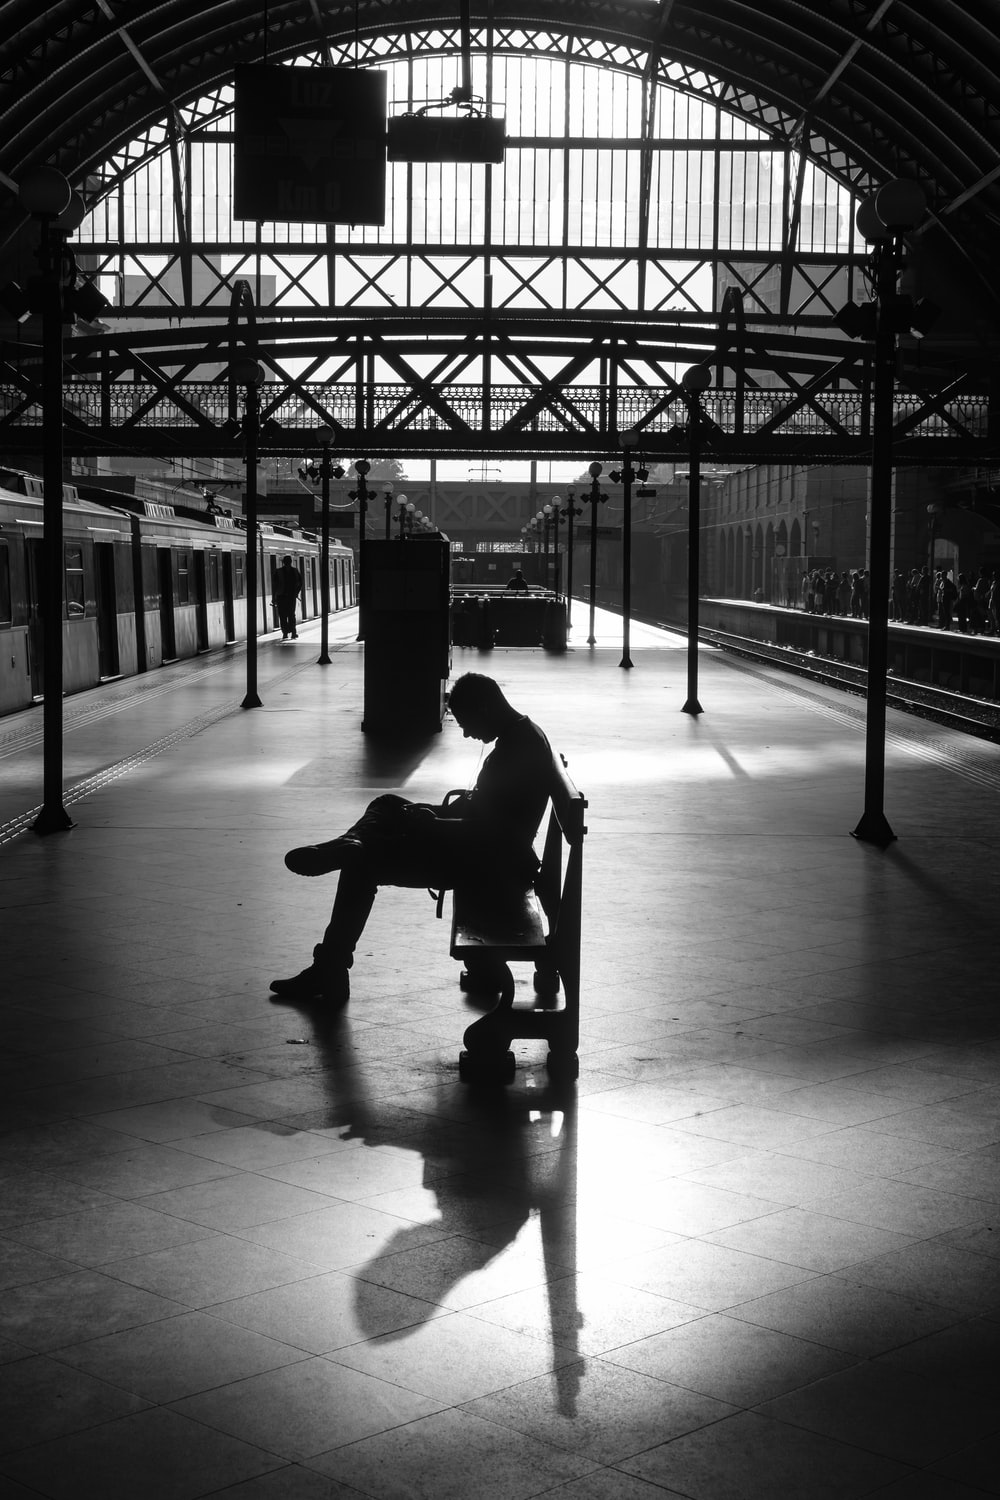 silhouette photography of person sitting on bench